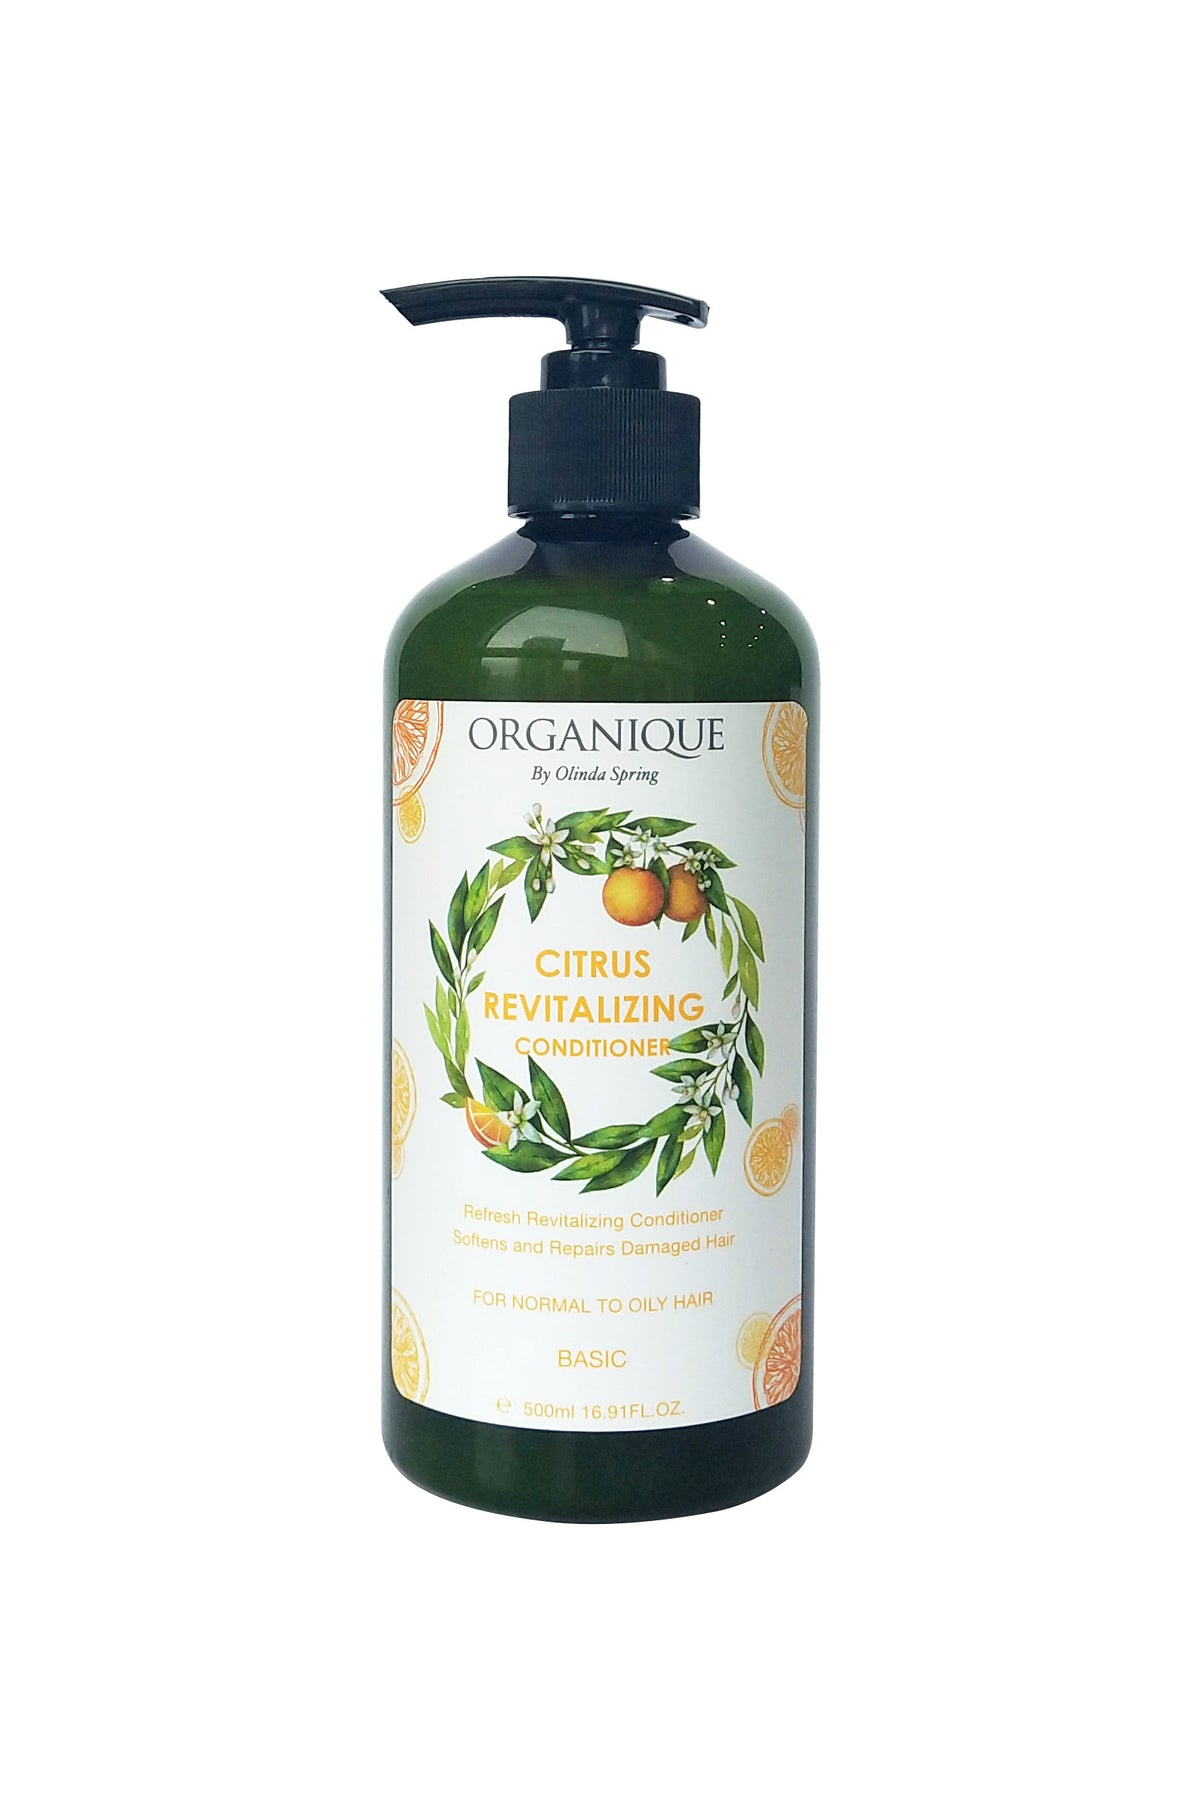 CITRUS REVITALIZING CONDITIONER